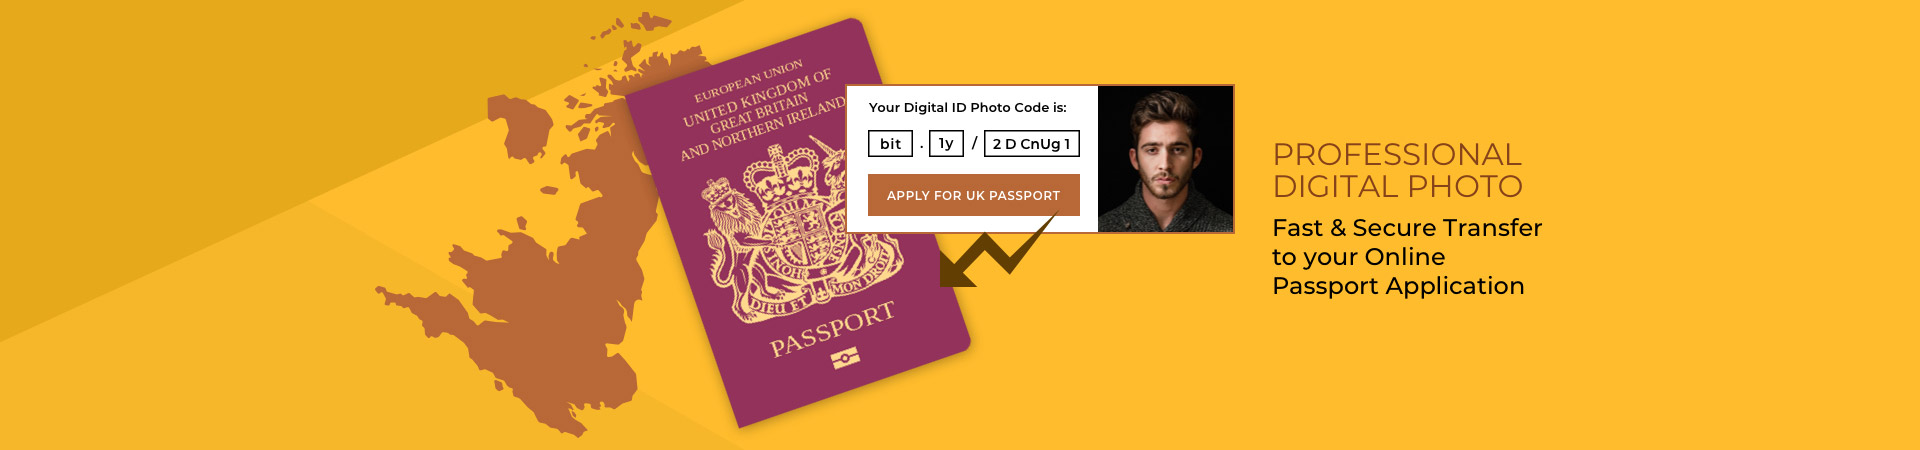 Get Passport ID photos